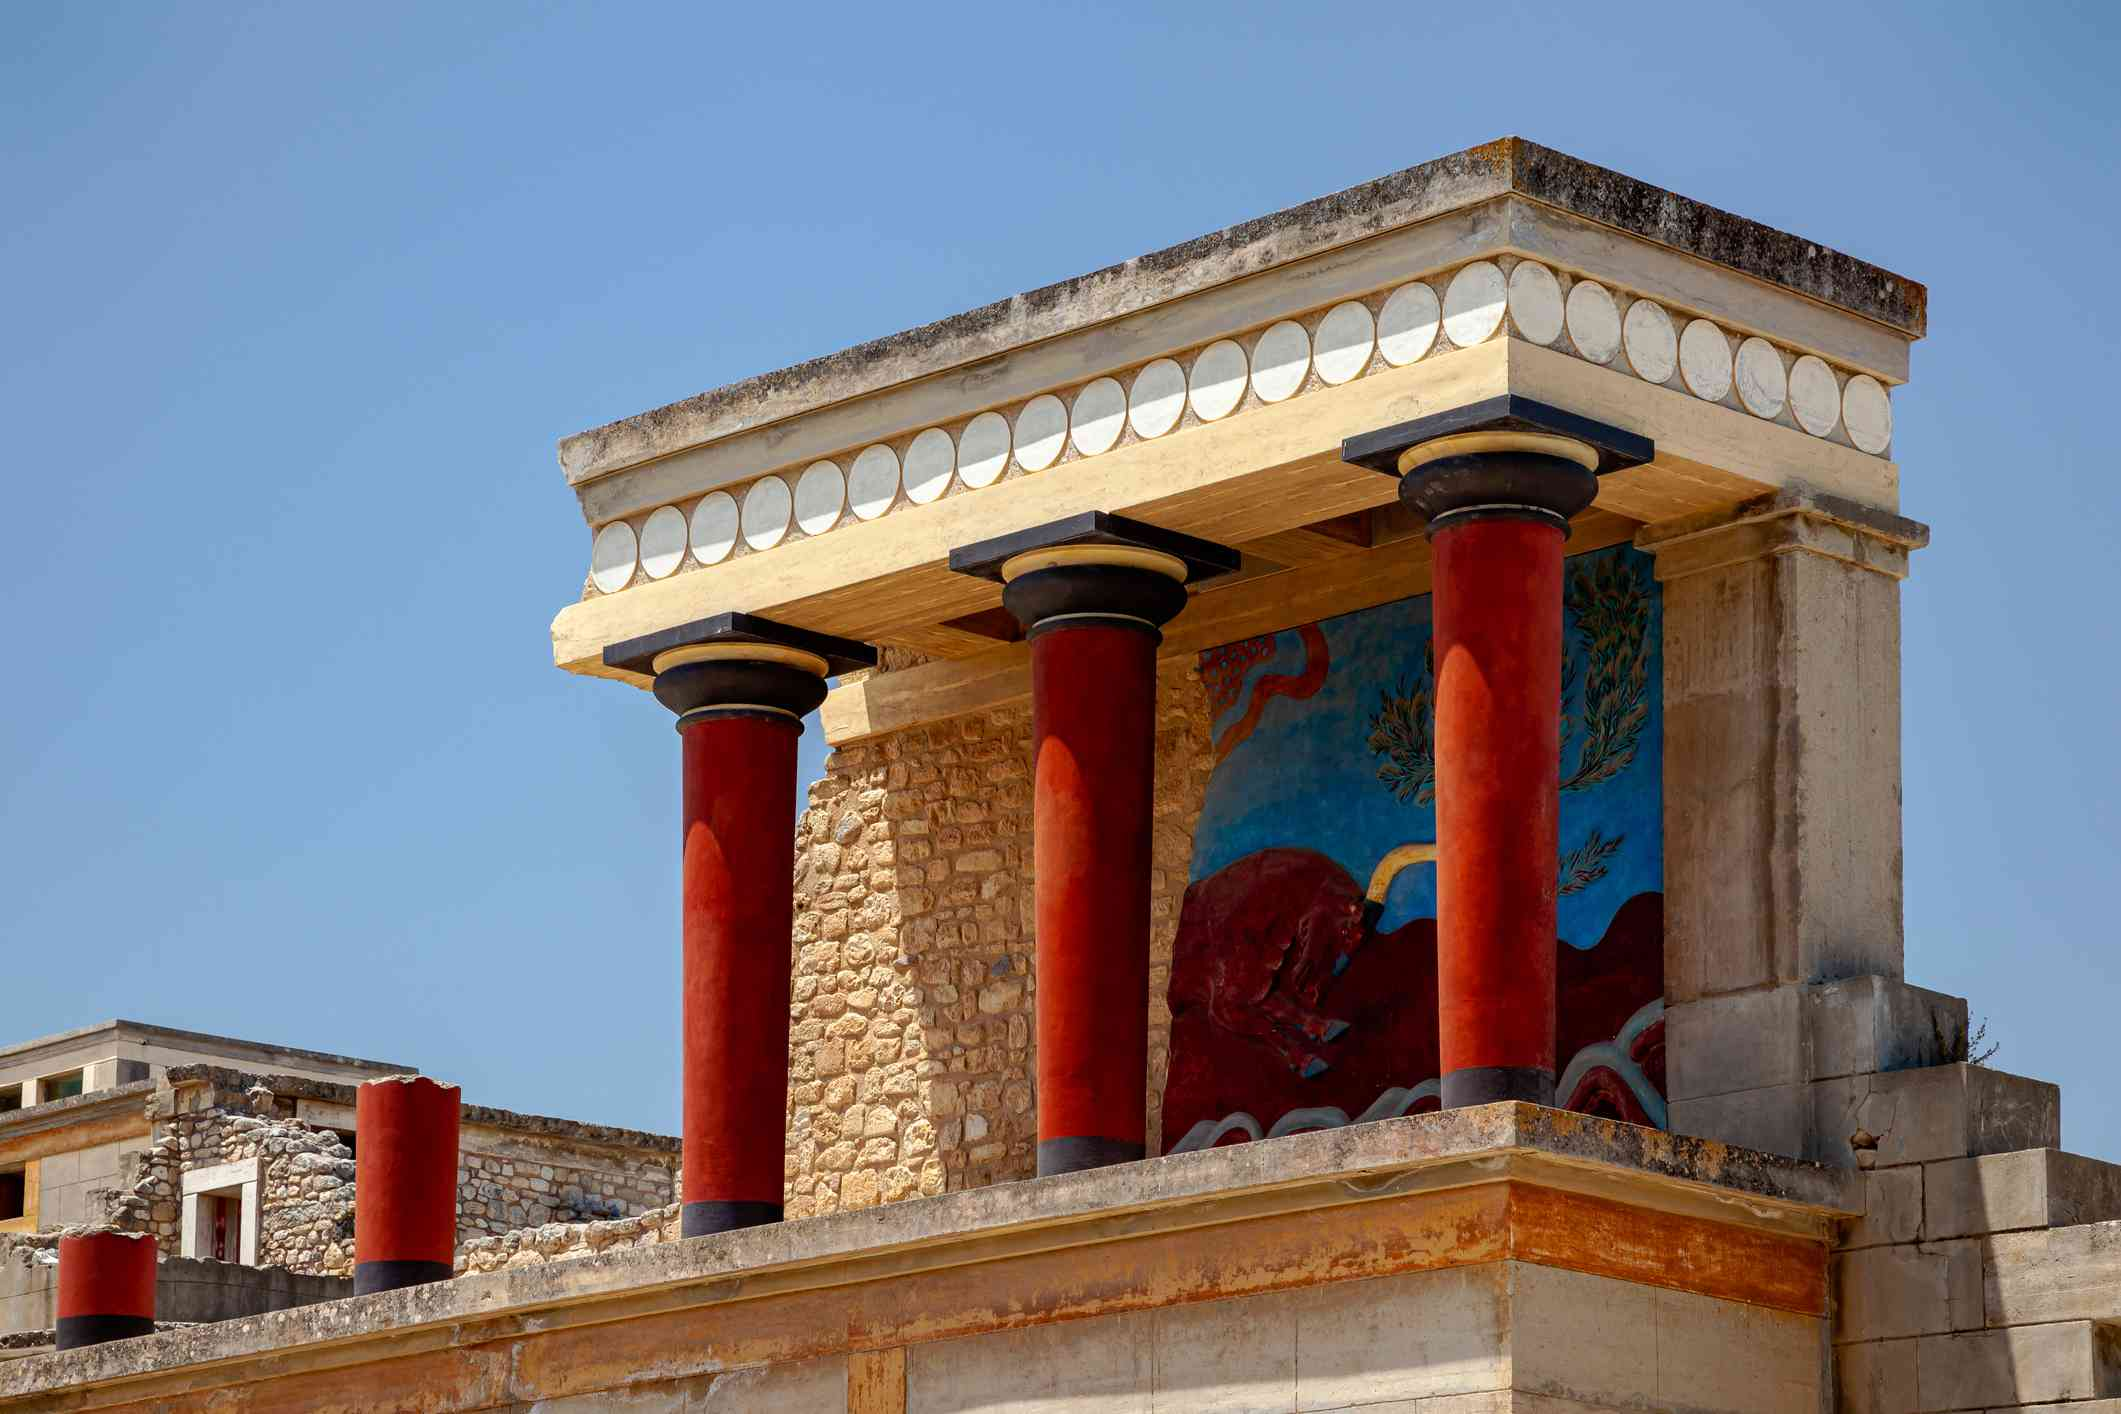 Partly reconstructed ruins of the ancient Minoan Palace of Knossos in Heraklion, Crete, Greece